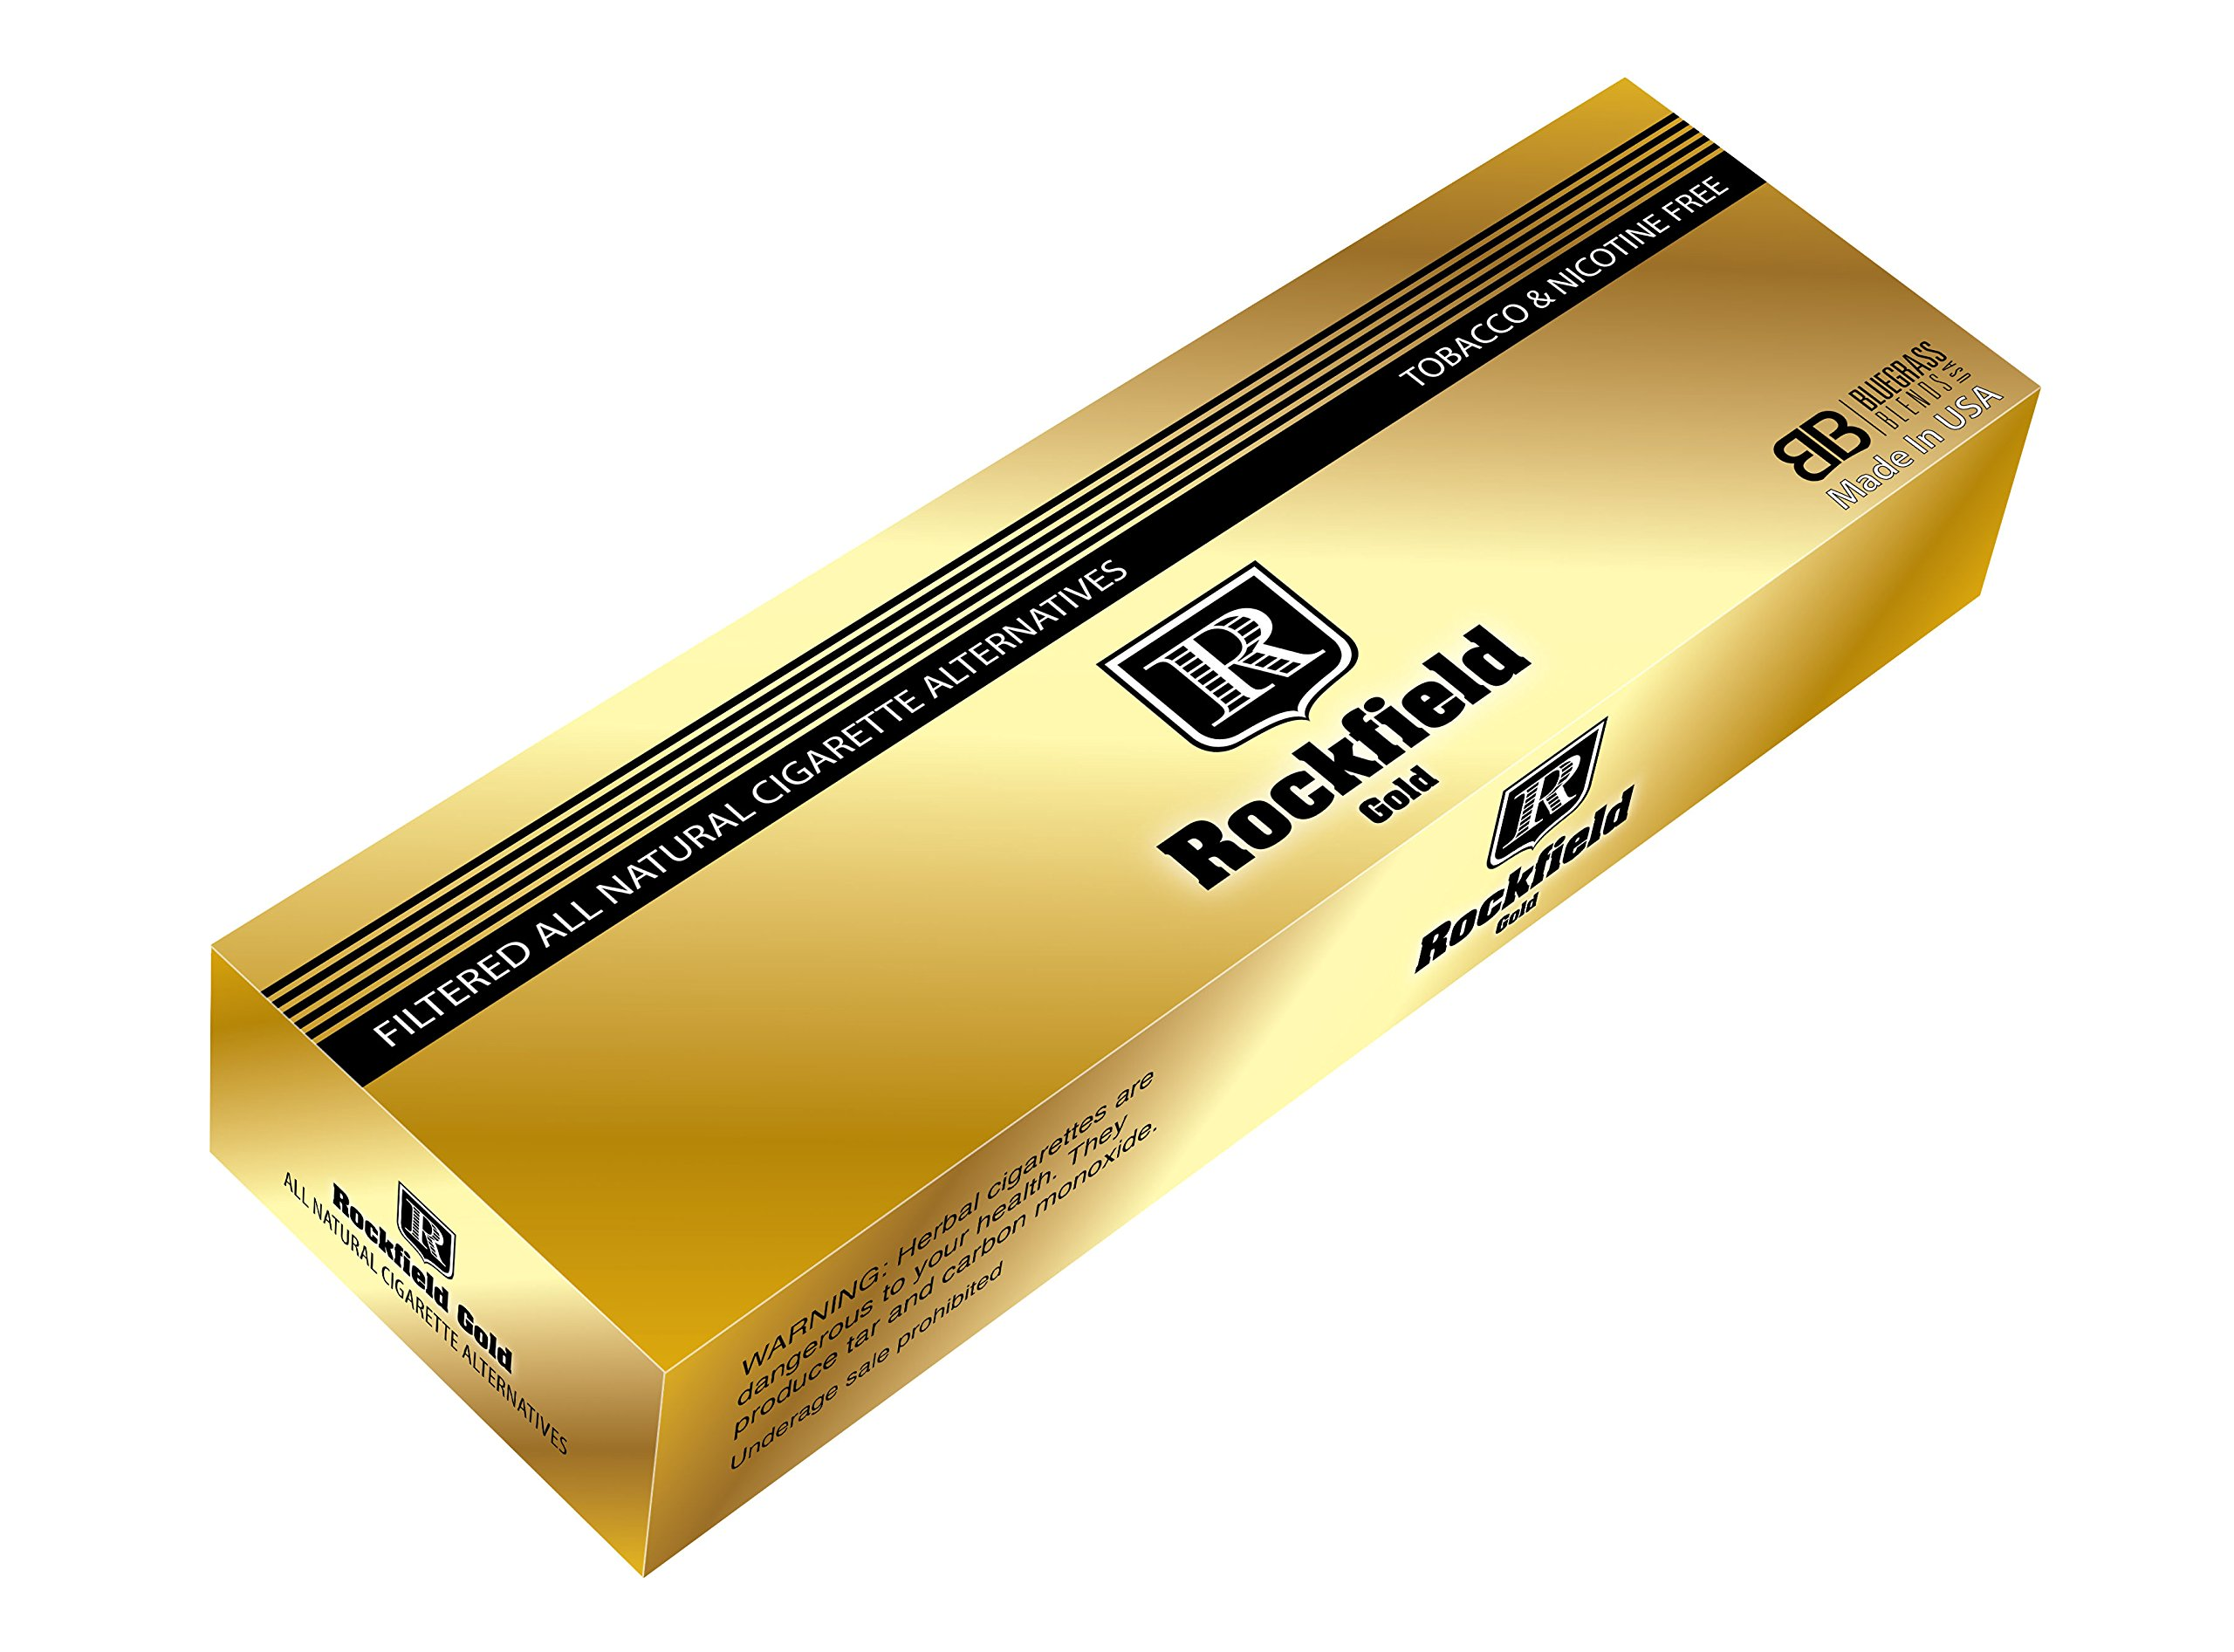 Rockfield ''Gold 100's'' - Carton - Tobacco Free - Nicotine Free - Nitrosamine Free - Herbal - Cigarette Alternative by Rockfield Gold 100's